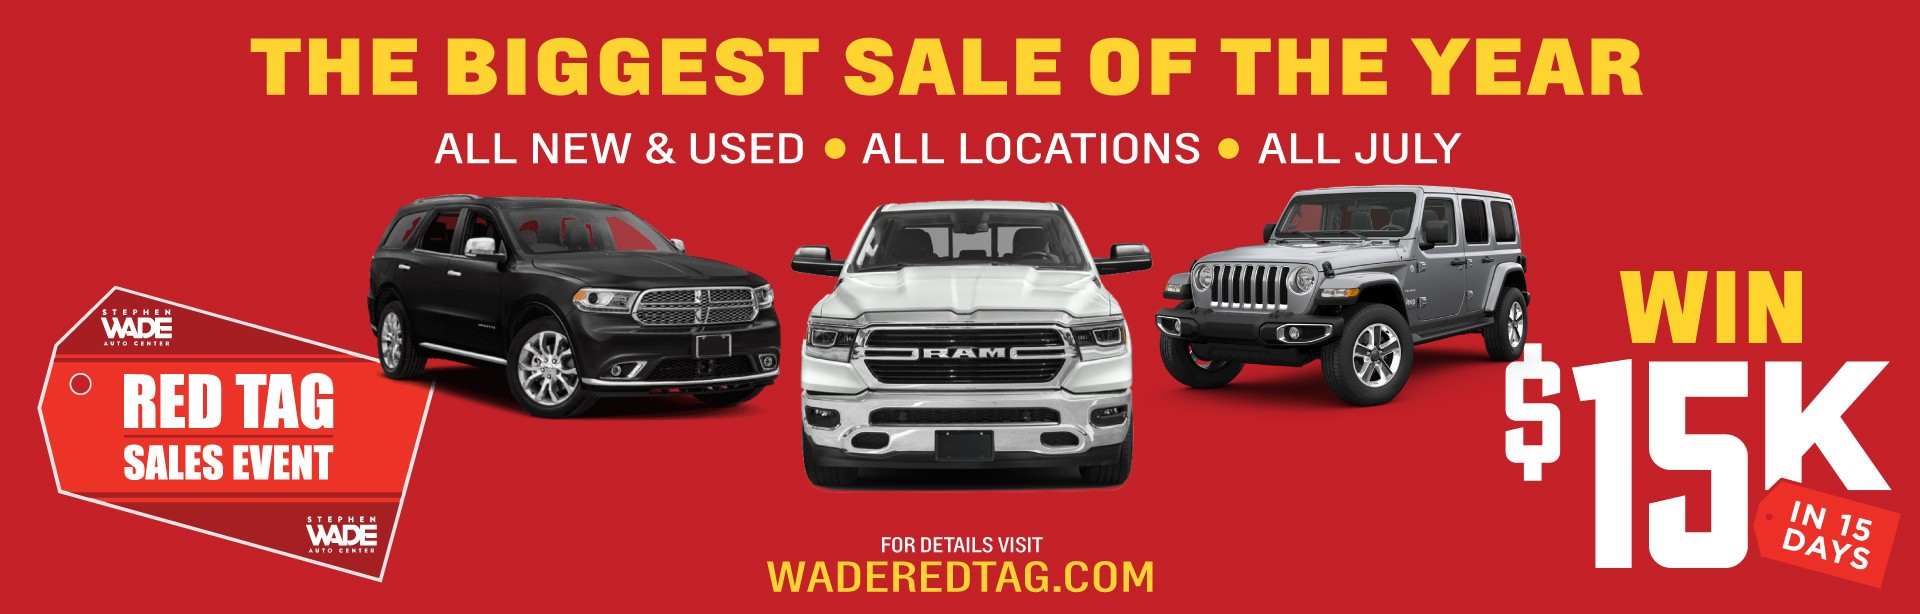 Red Tag Sales Event